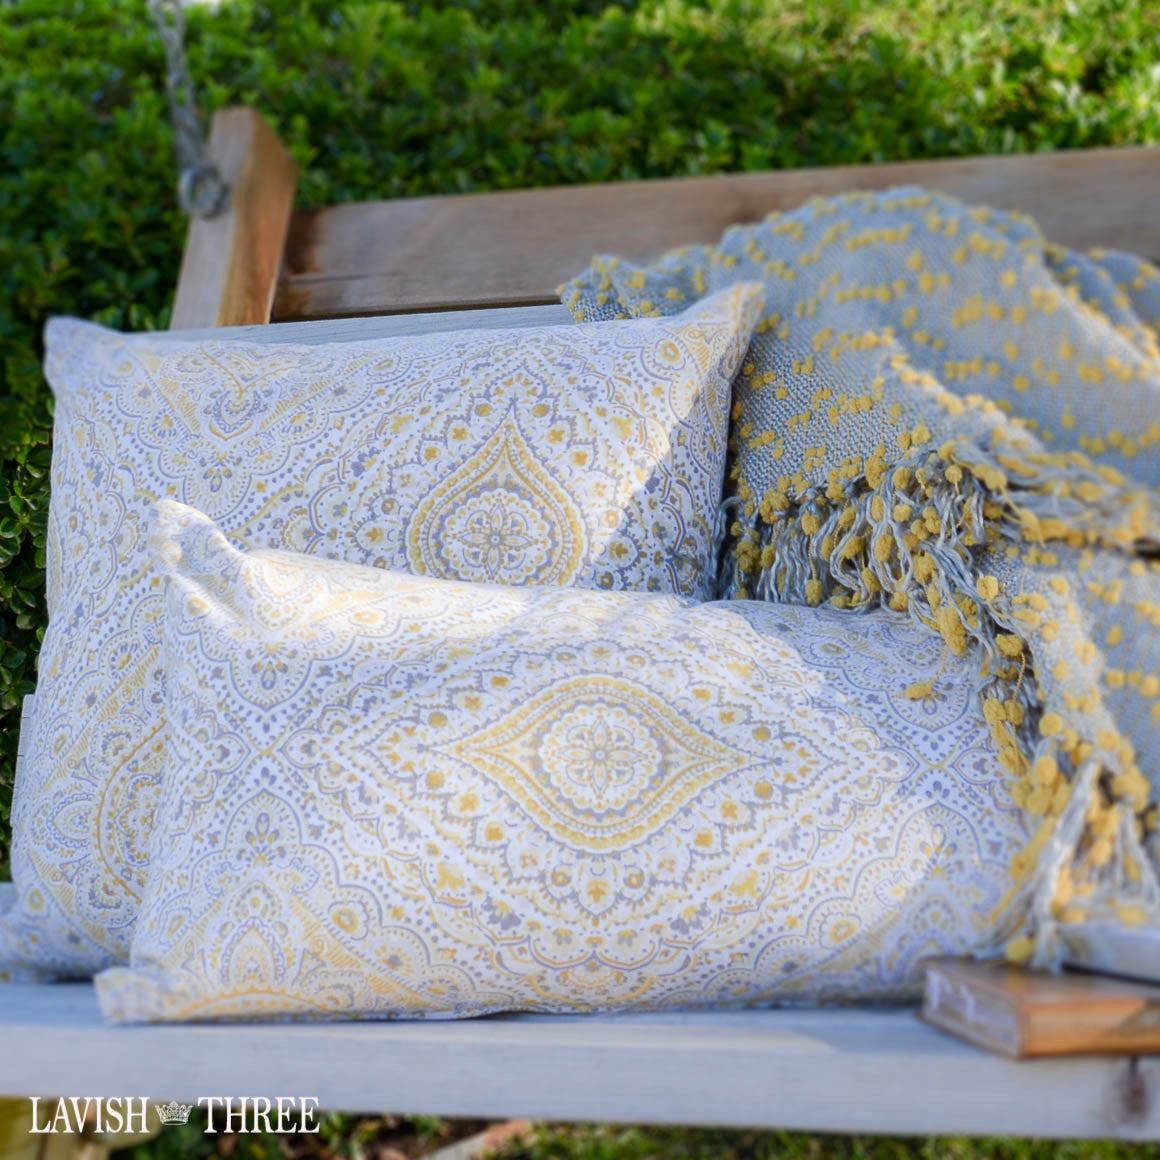 Batik patterned boho style pillow set in pale yellow, grey, taupe Lavish three 3